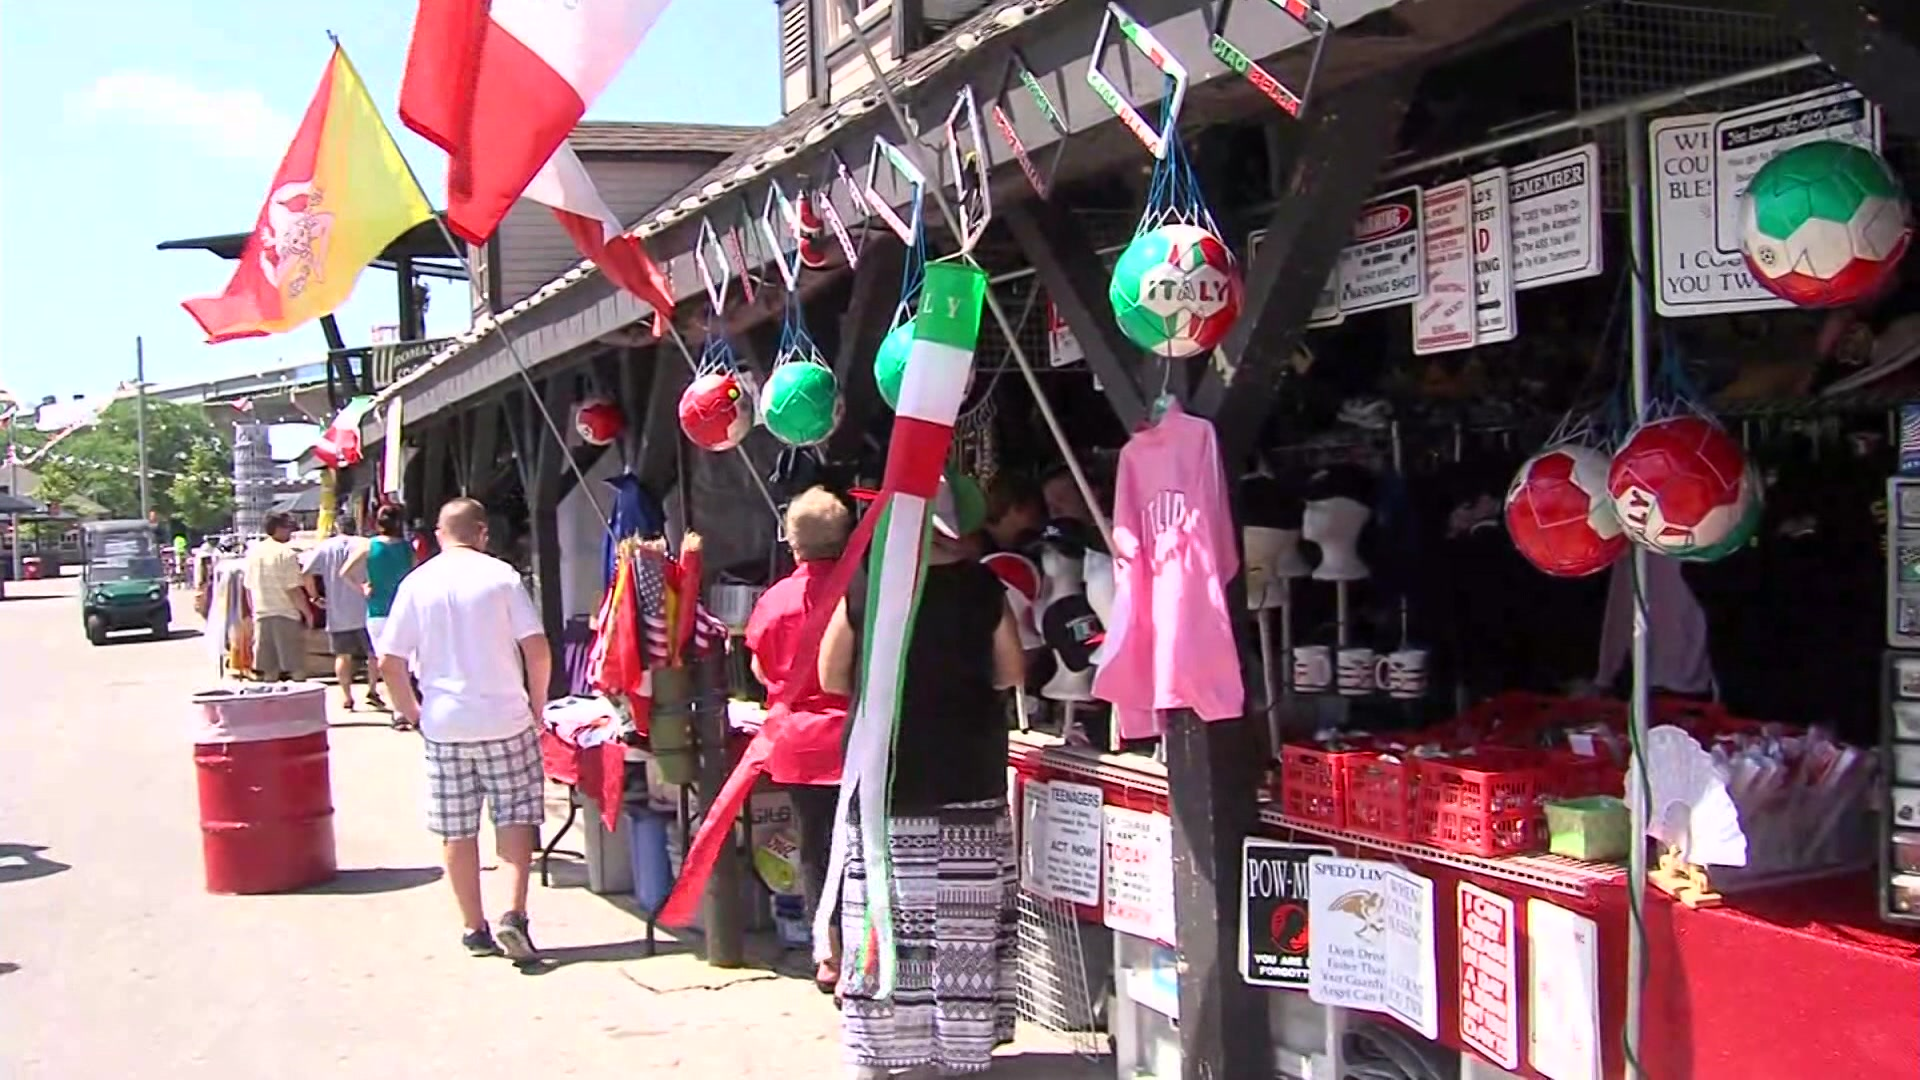 Festa Italiana changes water bottle policy due to heatwave